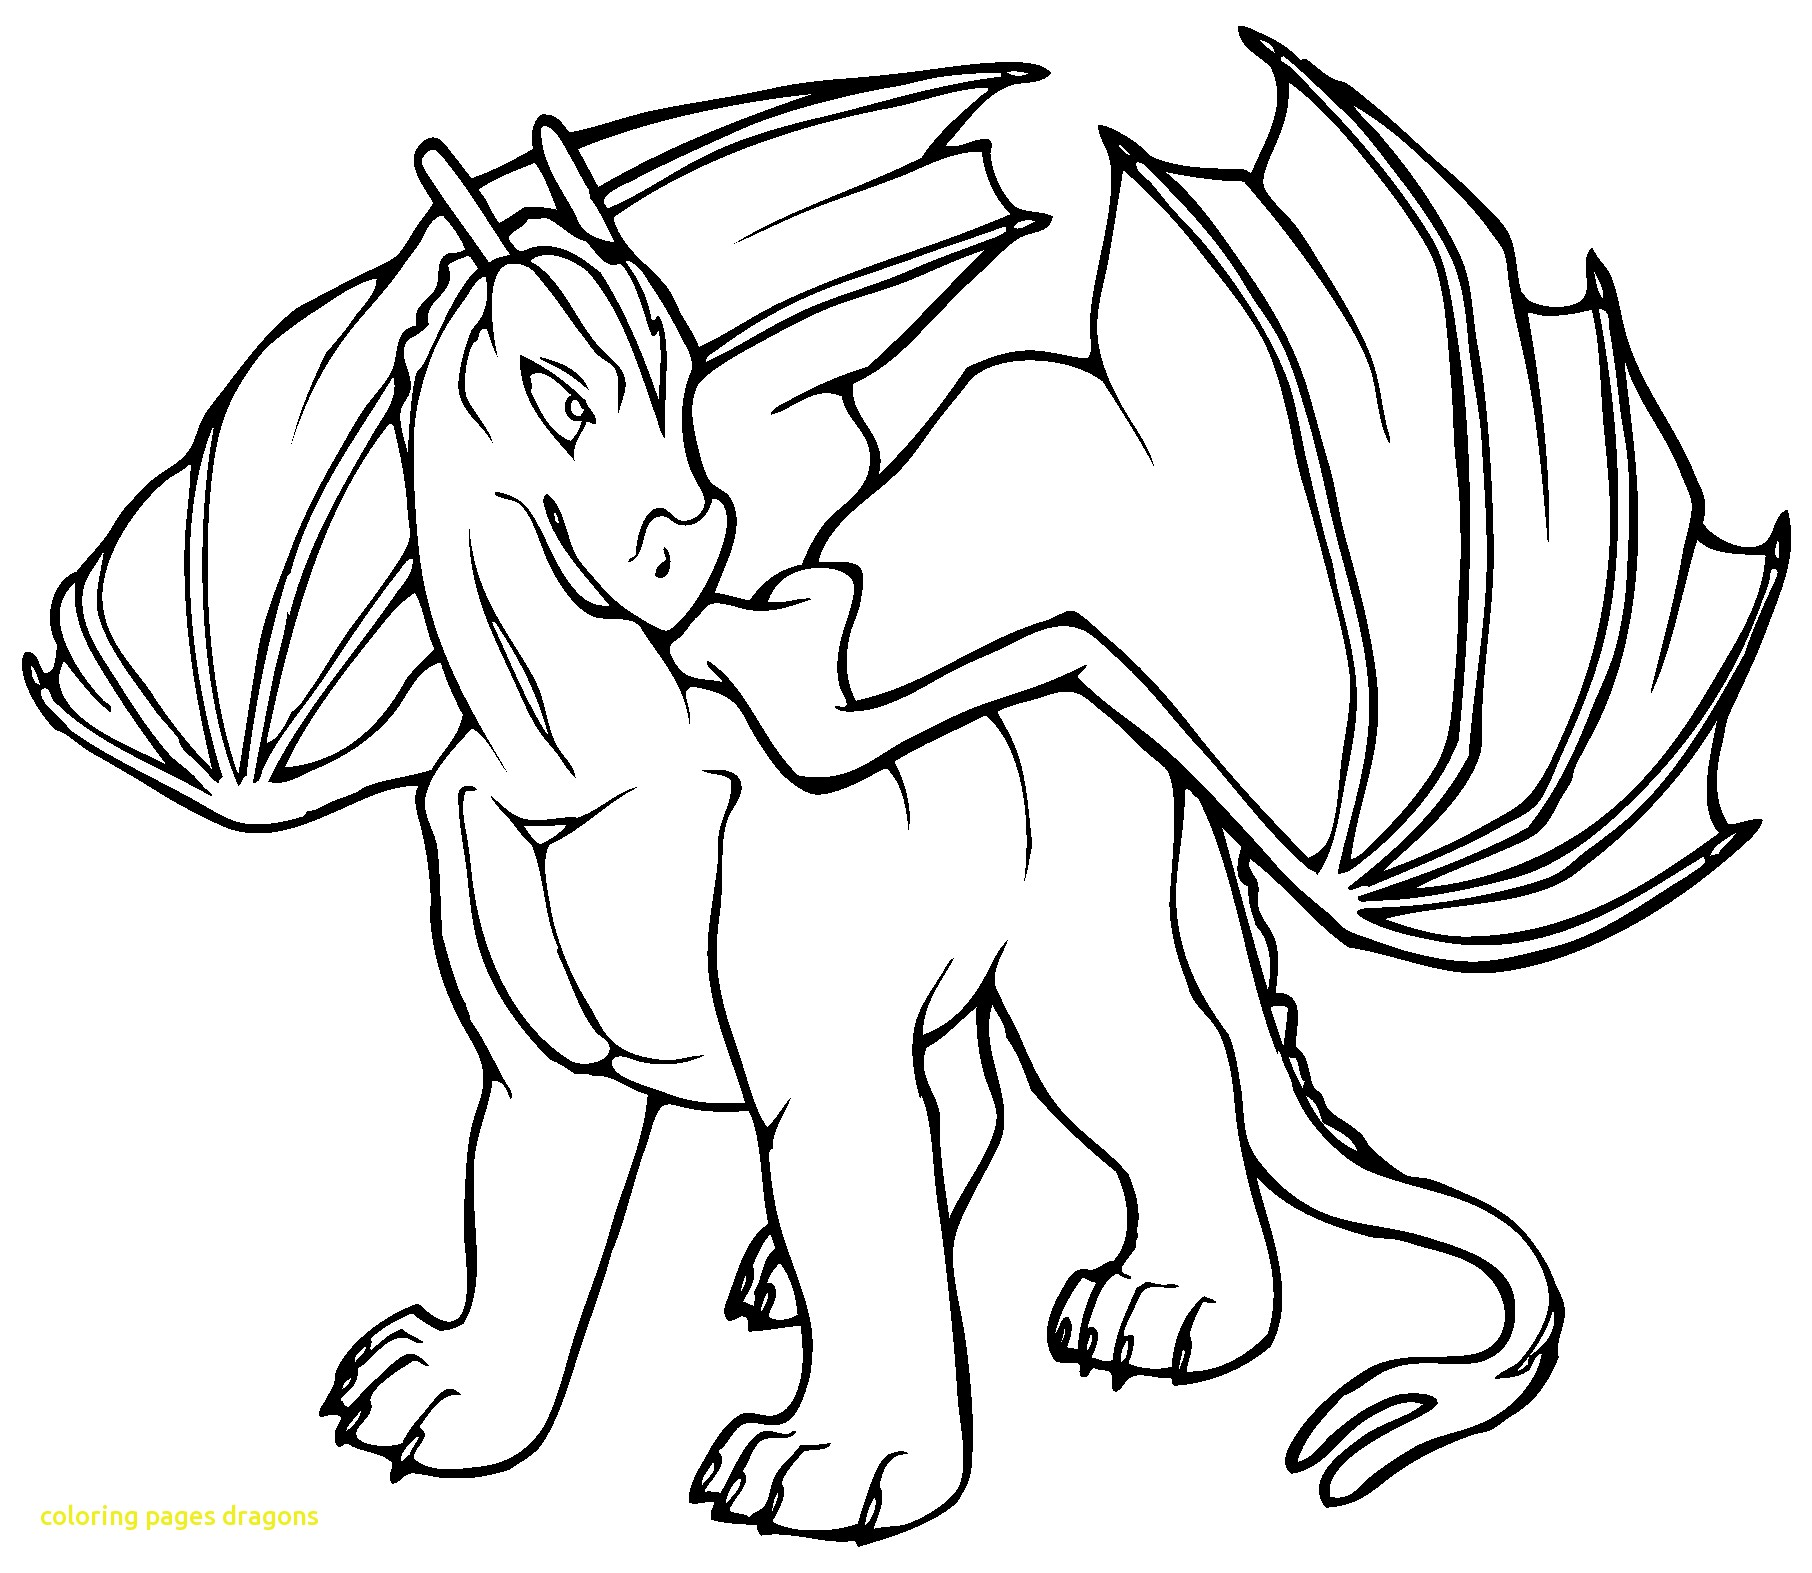 1812x1573 Coloring Pages Dragons With Free Printable Dragon Coloring Pages